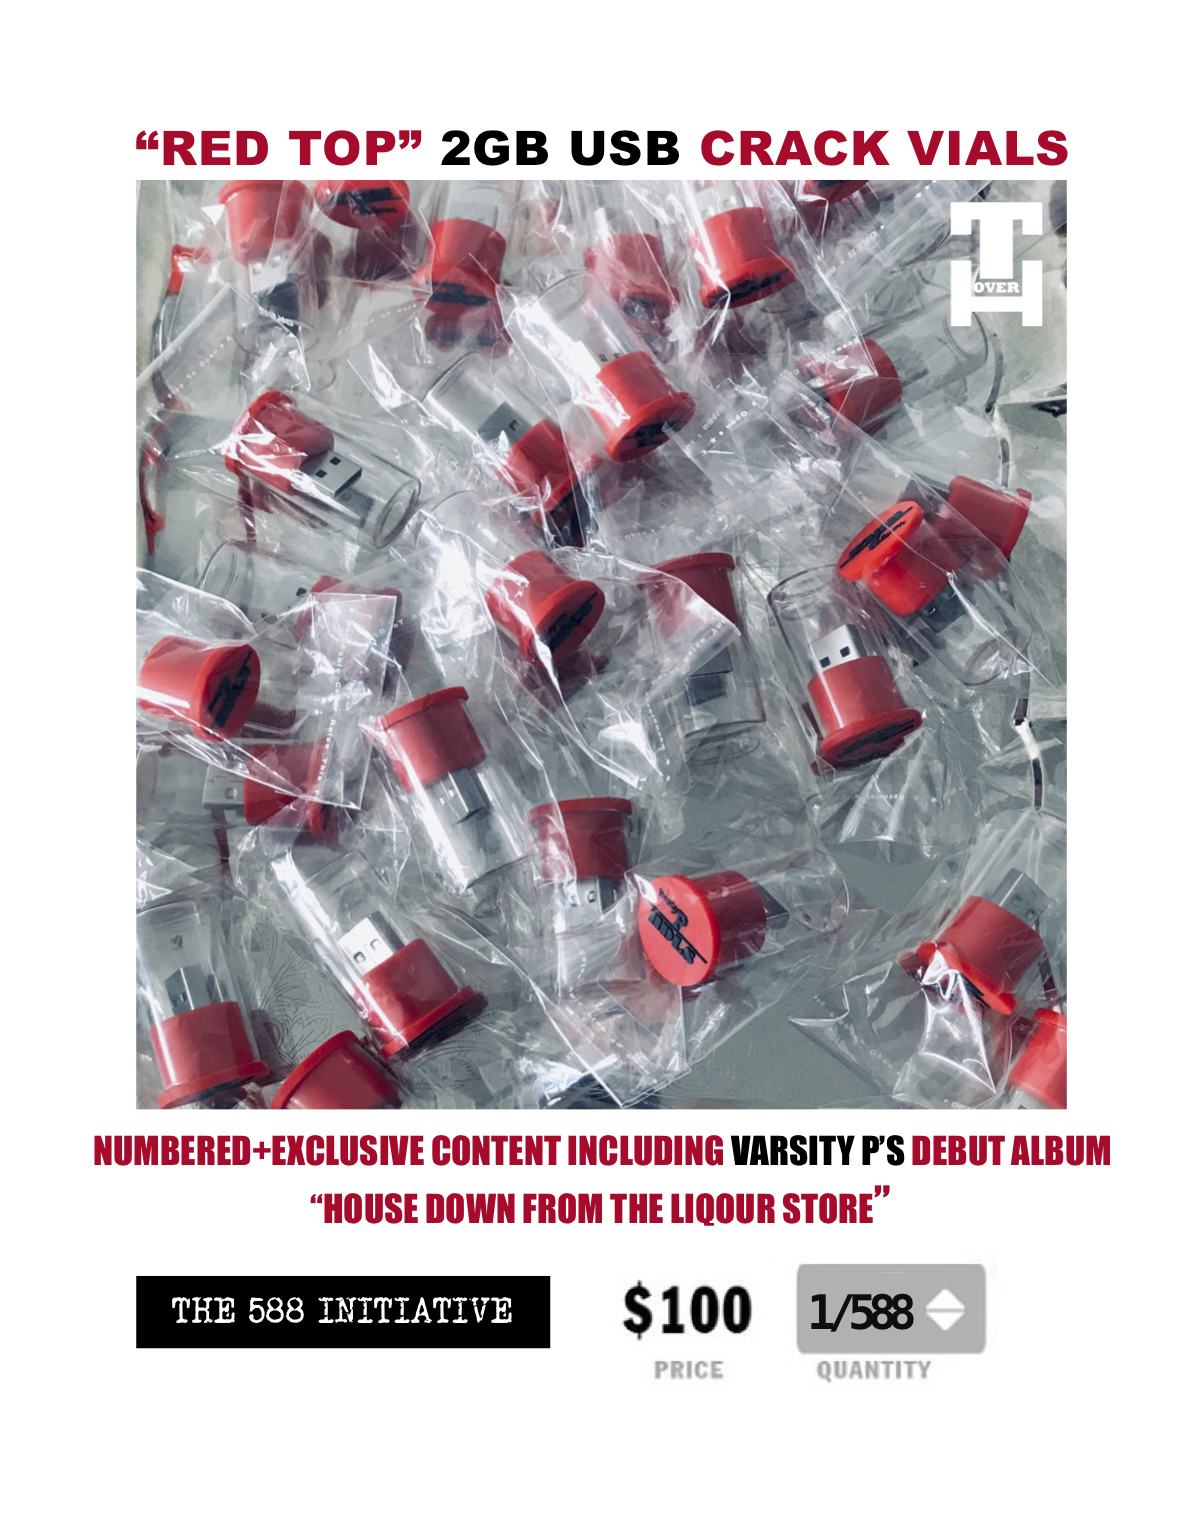 """THE 588 INITIATIVE - The 588 Initiative is a Proud 2 Pay campaign, in which Varsity P has the goal of selling 588 """"Red Top"""" USB Crack Vials for the price of $100 each. These vials contain Varsity P's debut album """"House Down From The Liquor Store"""", his new single and music video for PRODUCT and other exclusive content associated with this album campaign. Purchases will also come with a T-shirt and ticket to a private concert Varsity P is holding for all die hard fans who are Proud 2 Pay!The significance of the number 588 is it being the address of 588 Wilson avenue, Varsity P's childhood home in Bushwick, Brooklyn and the POV his album speaks from.Inspired by Nipsey Hussle The Great!Funds will be used to enhance the awareness and impact of Varsity P's debut album as well as assist in the establishment of The588Initiative.org, a community based program that will focus on music, sports and health with the commitment of impacting 588 lives on a yearly bases."""